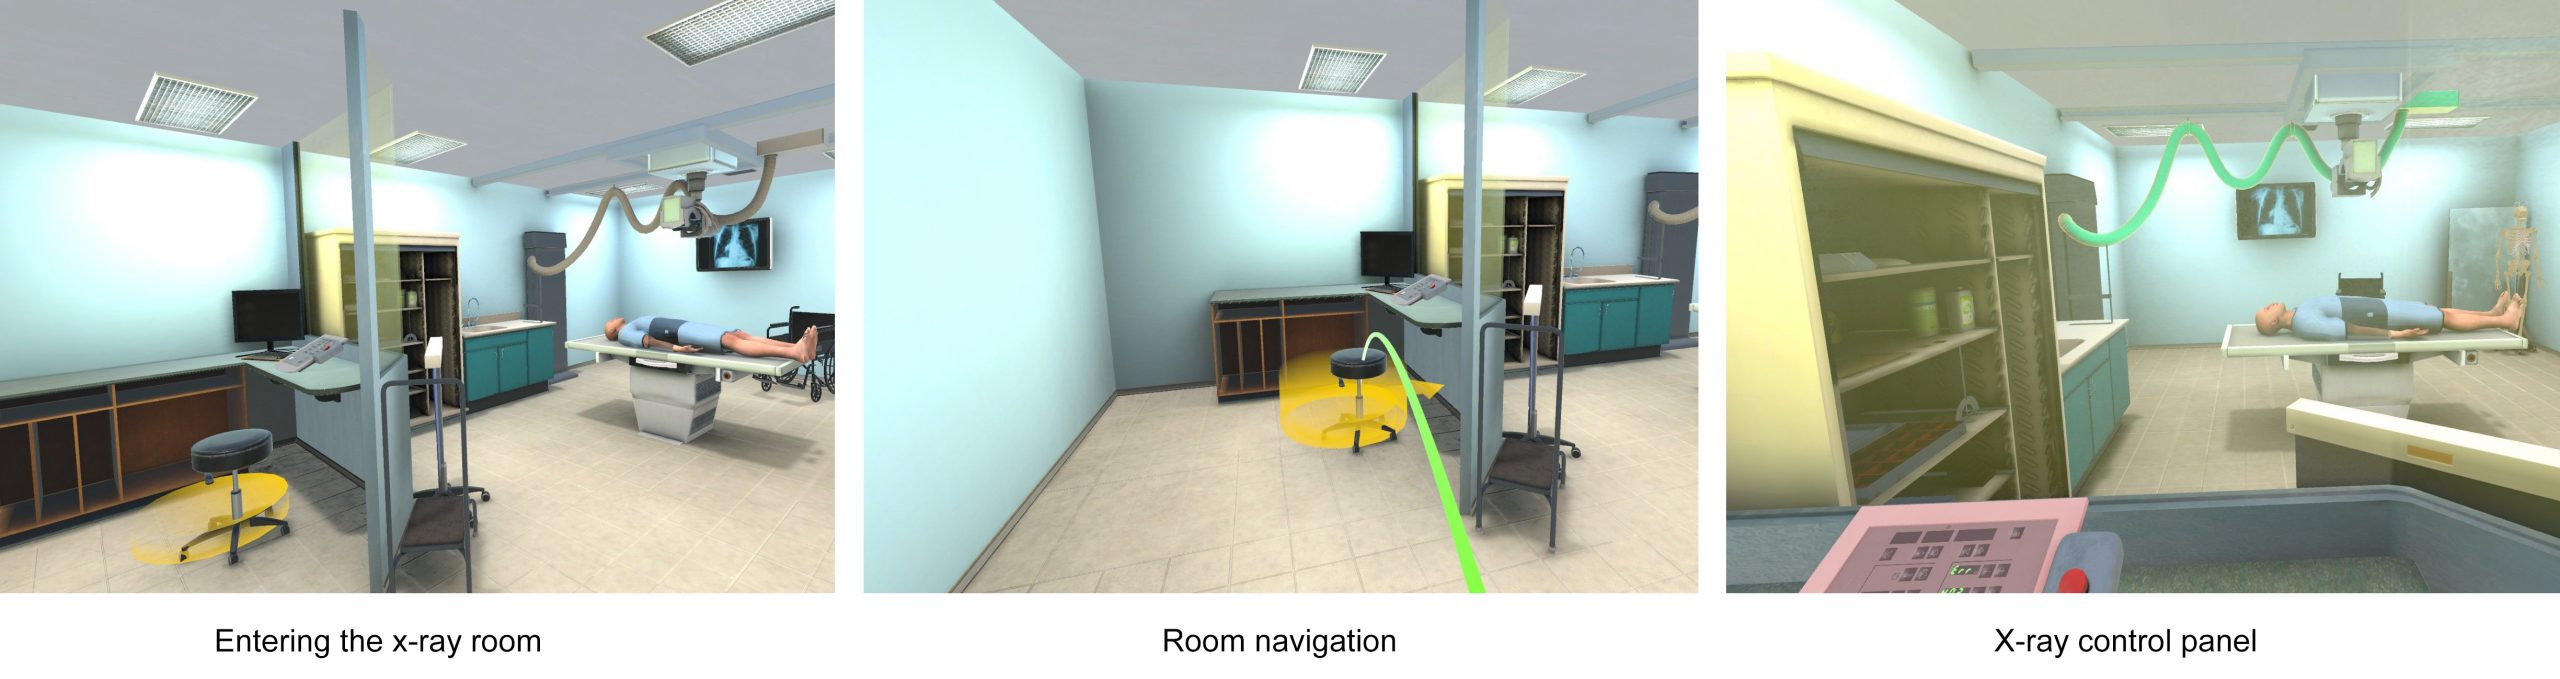 guided vr experience of xray production